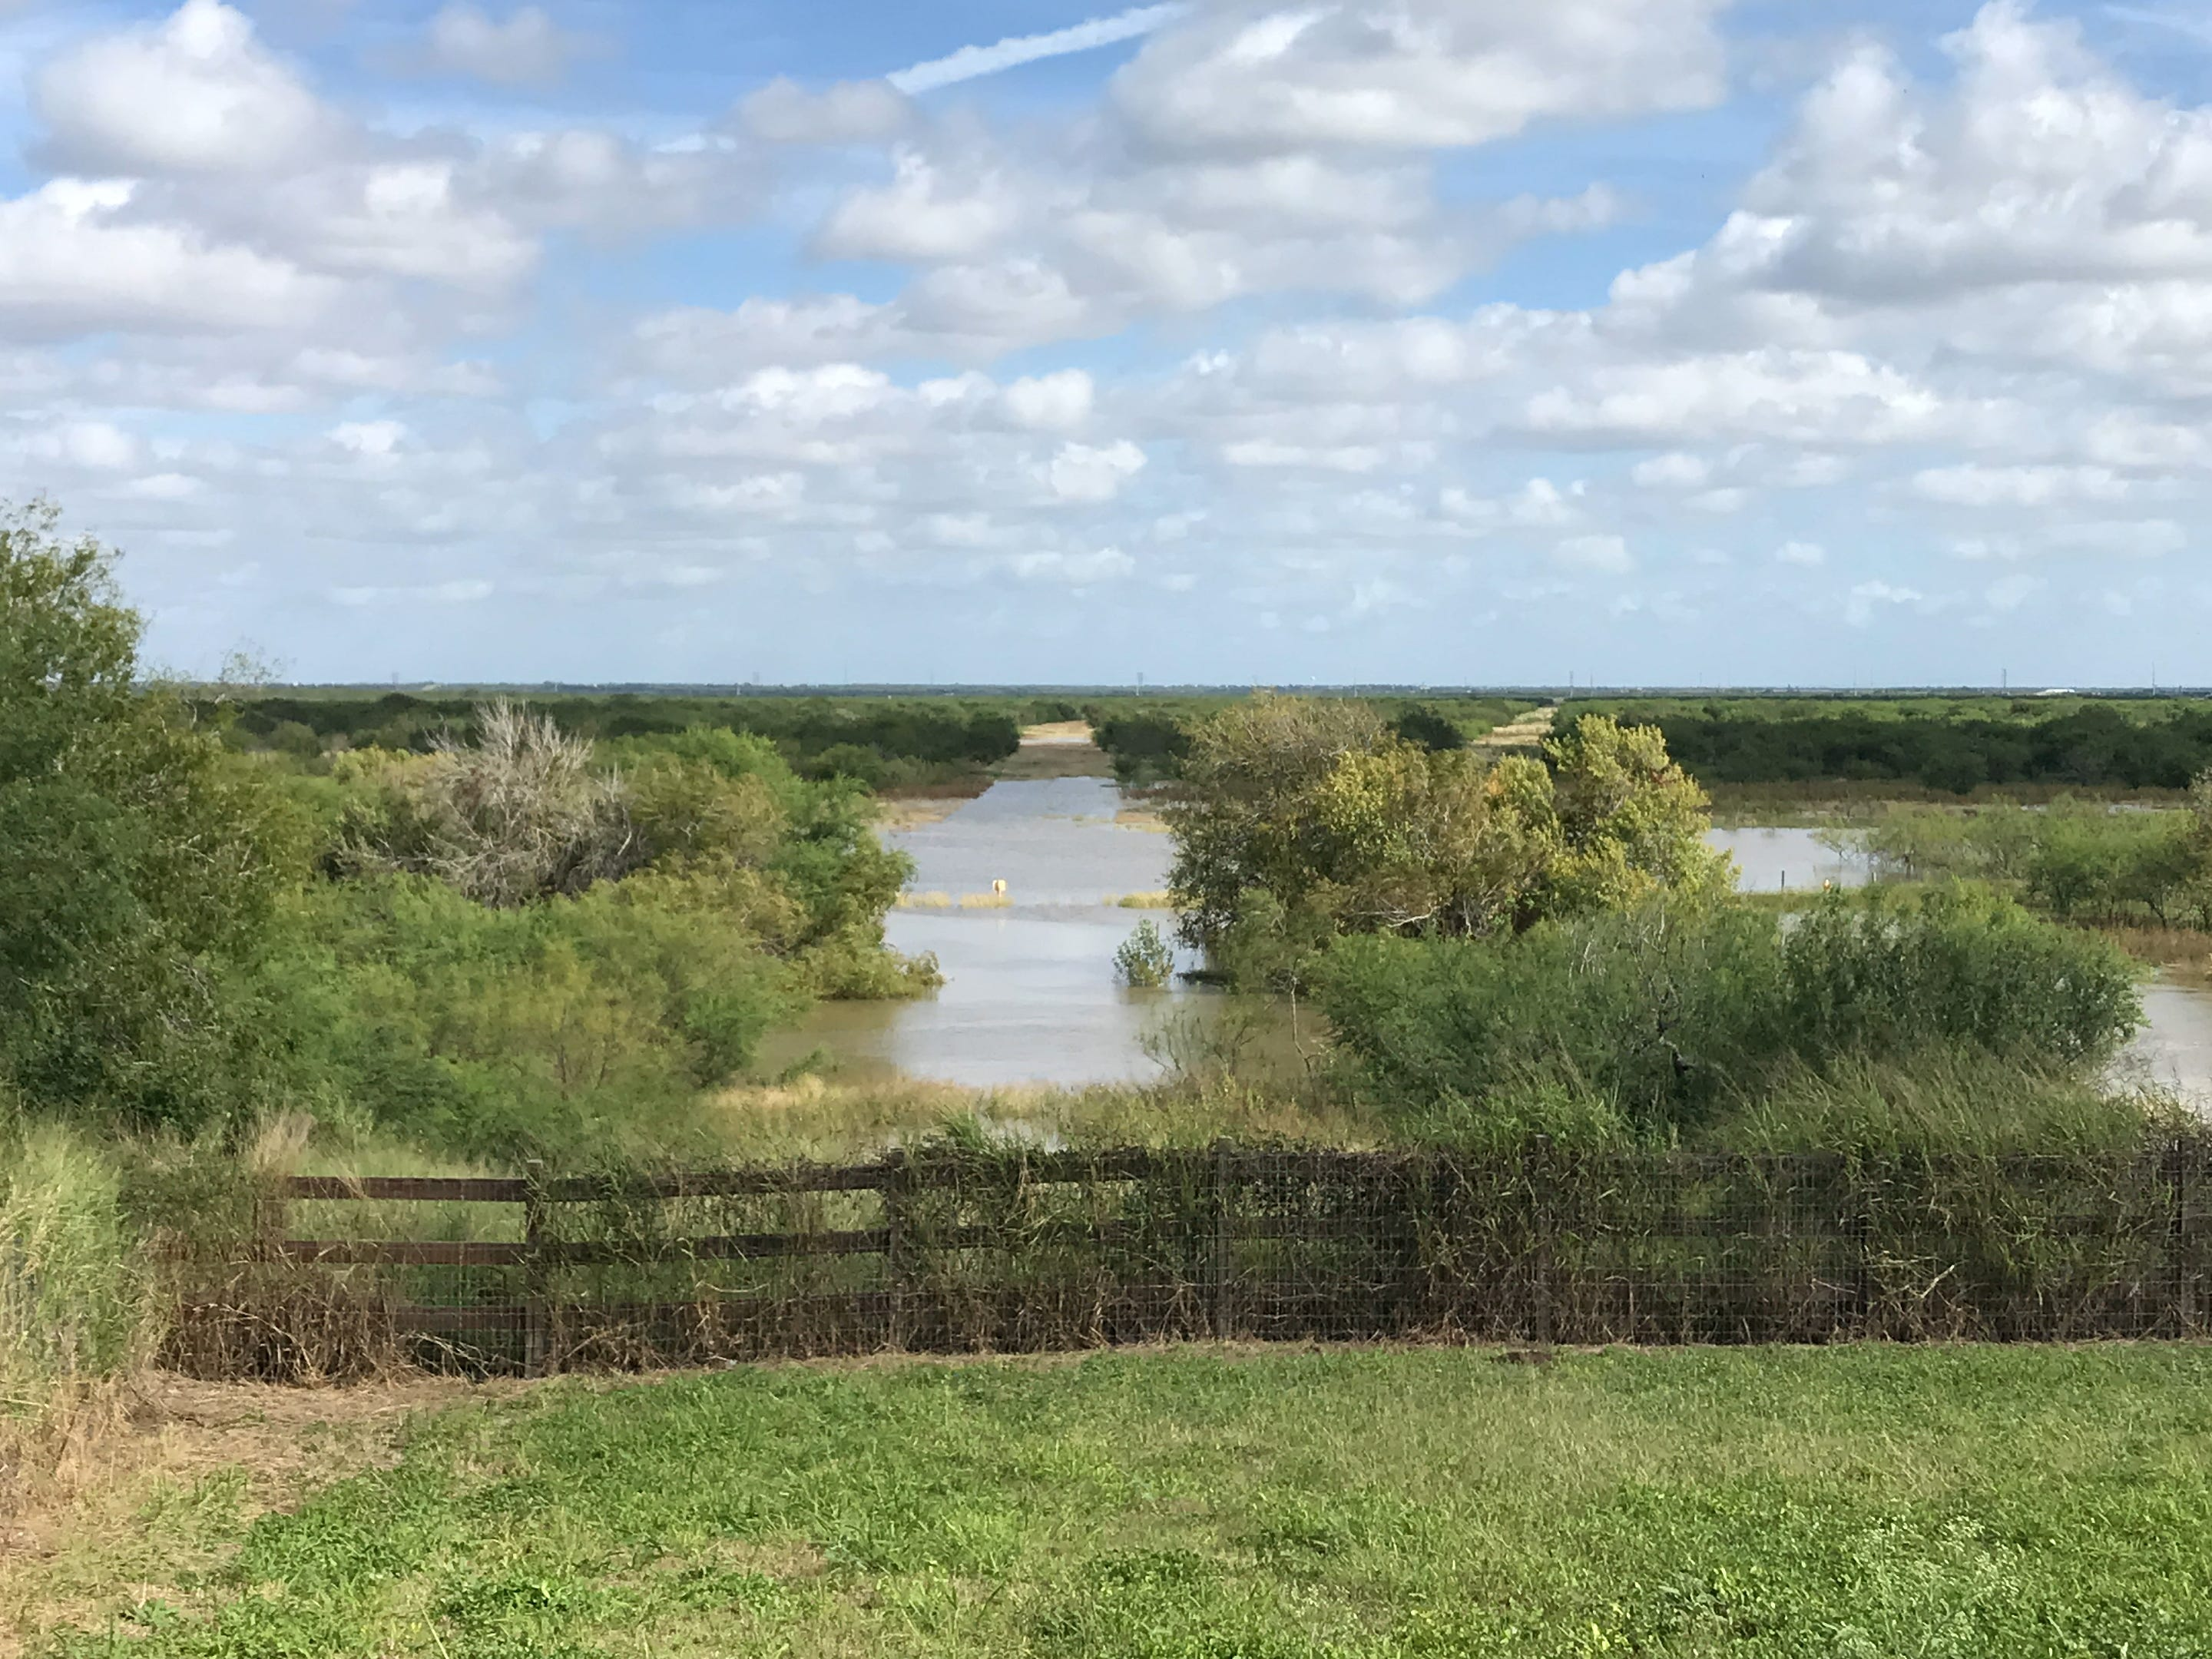 Nueces County officials cautioned residents about flood conditions from the Nueces River. Water approached homes on River Trail Drive in Corpus Christi on Tuesday, Oct. 30, 2018.